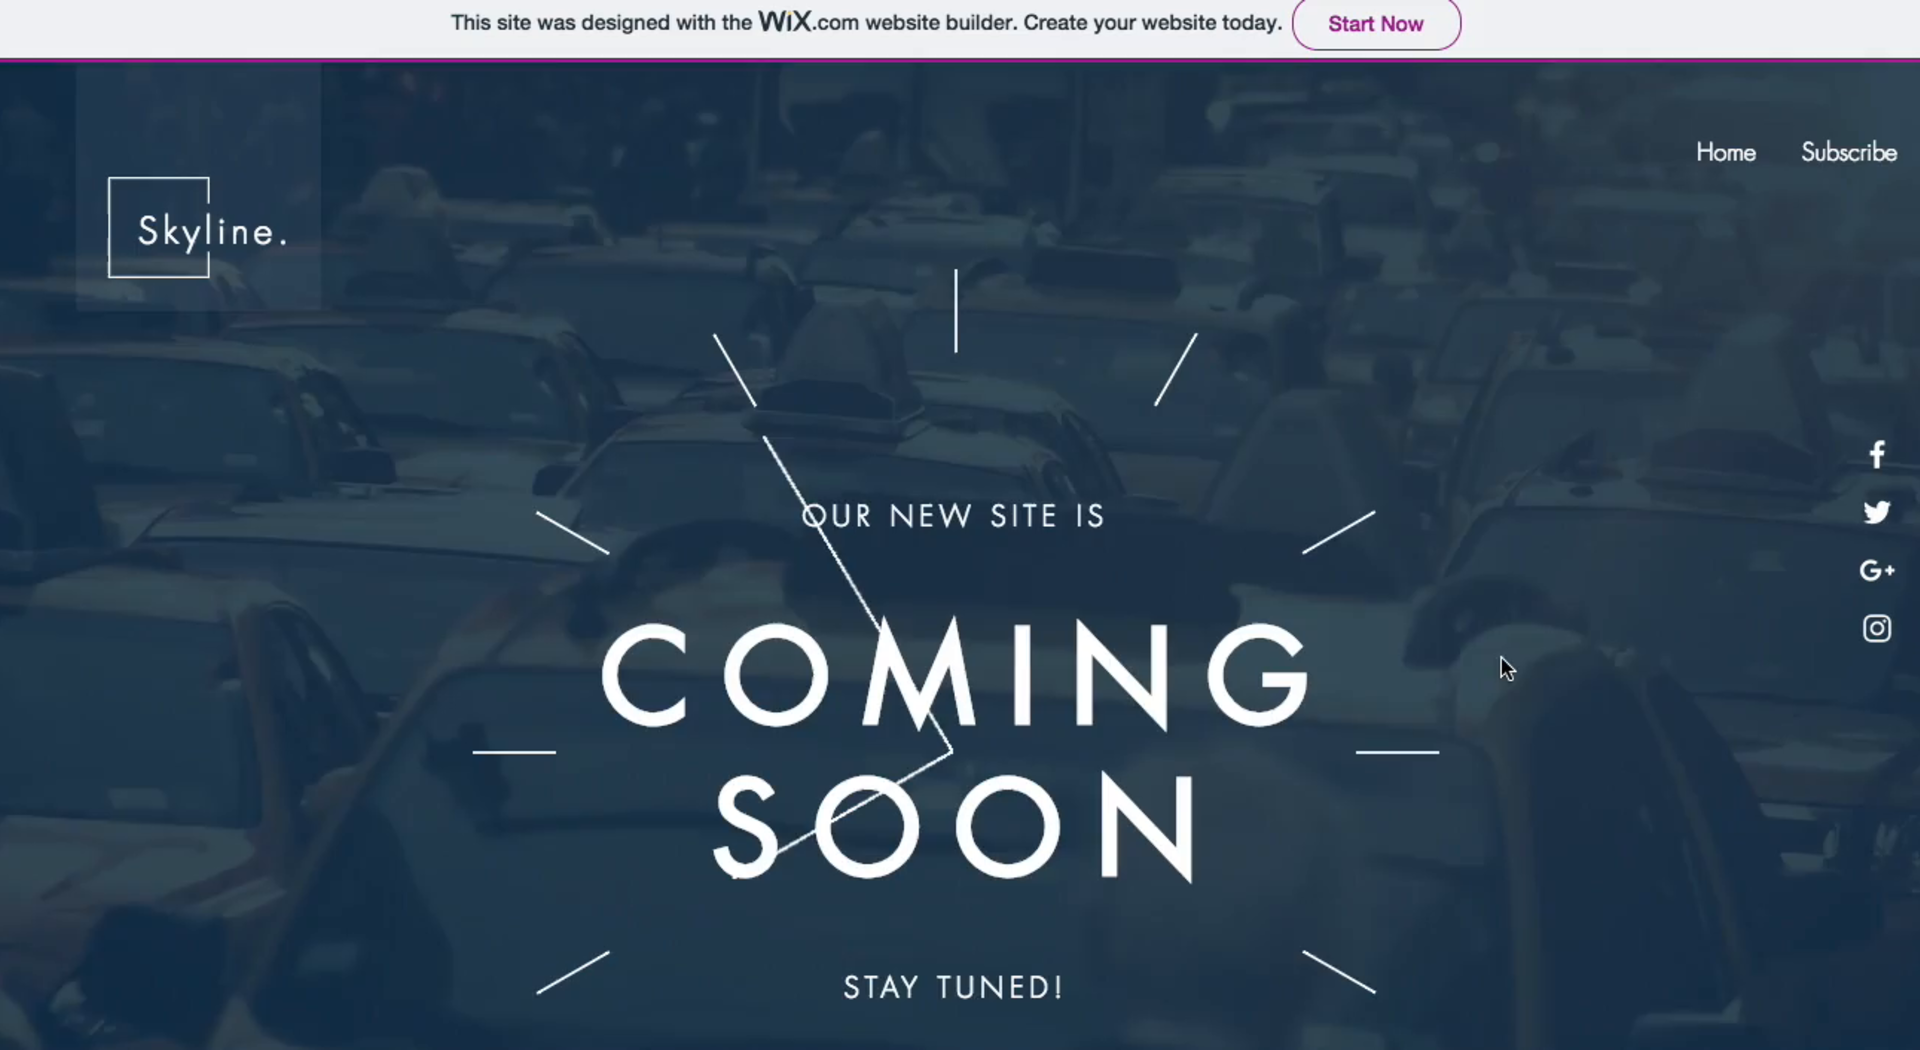 Wix Review | 9 Important Things To Know (2019)